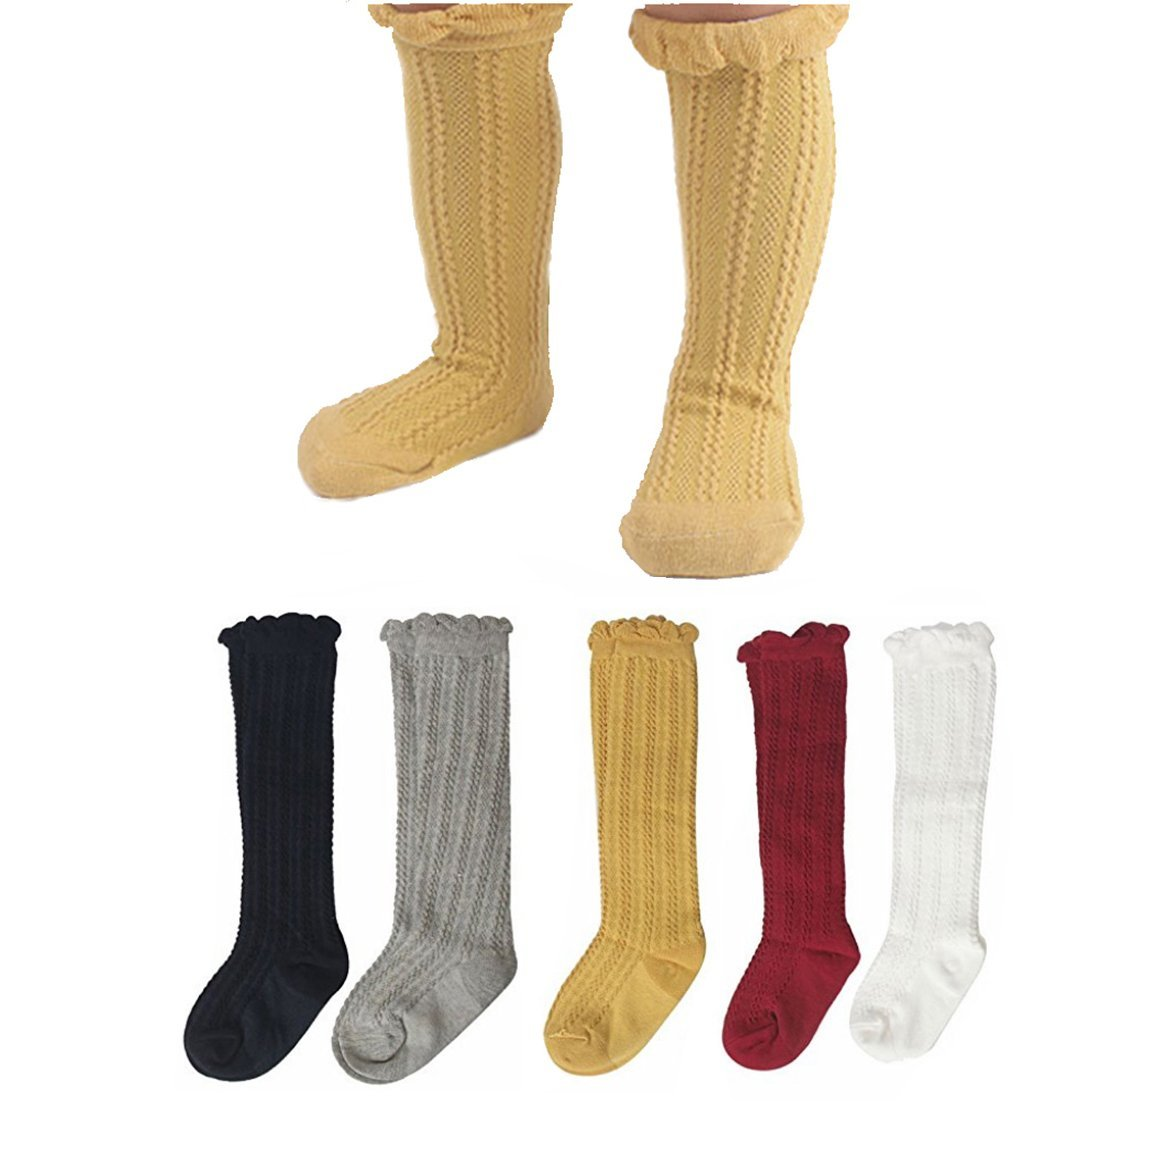 5Pairs Unisex Baby Cable Knit Knee High Socks Cotton Tights Leg Warmer Tube Stocking Sywwlov